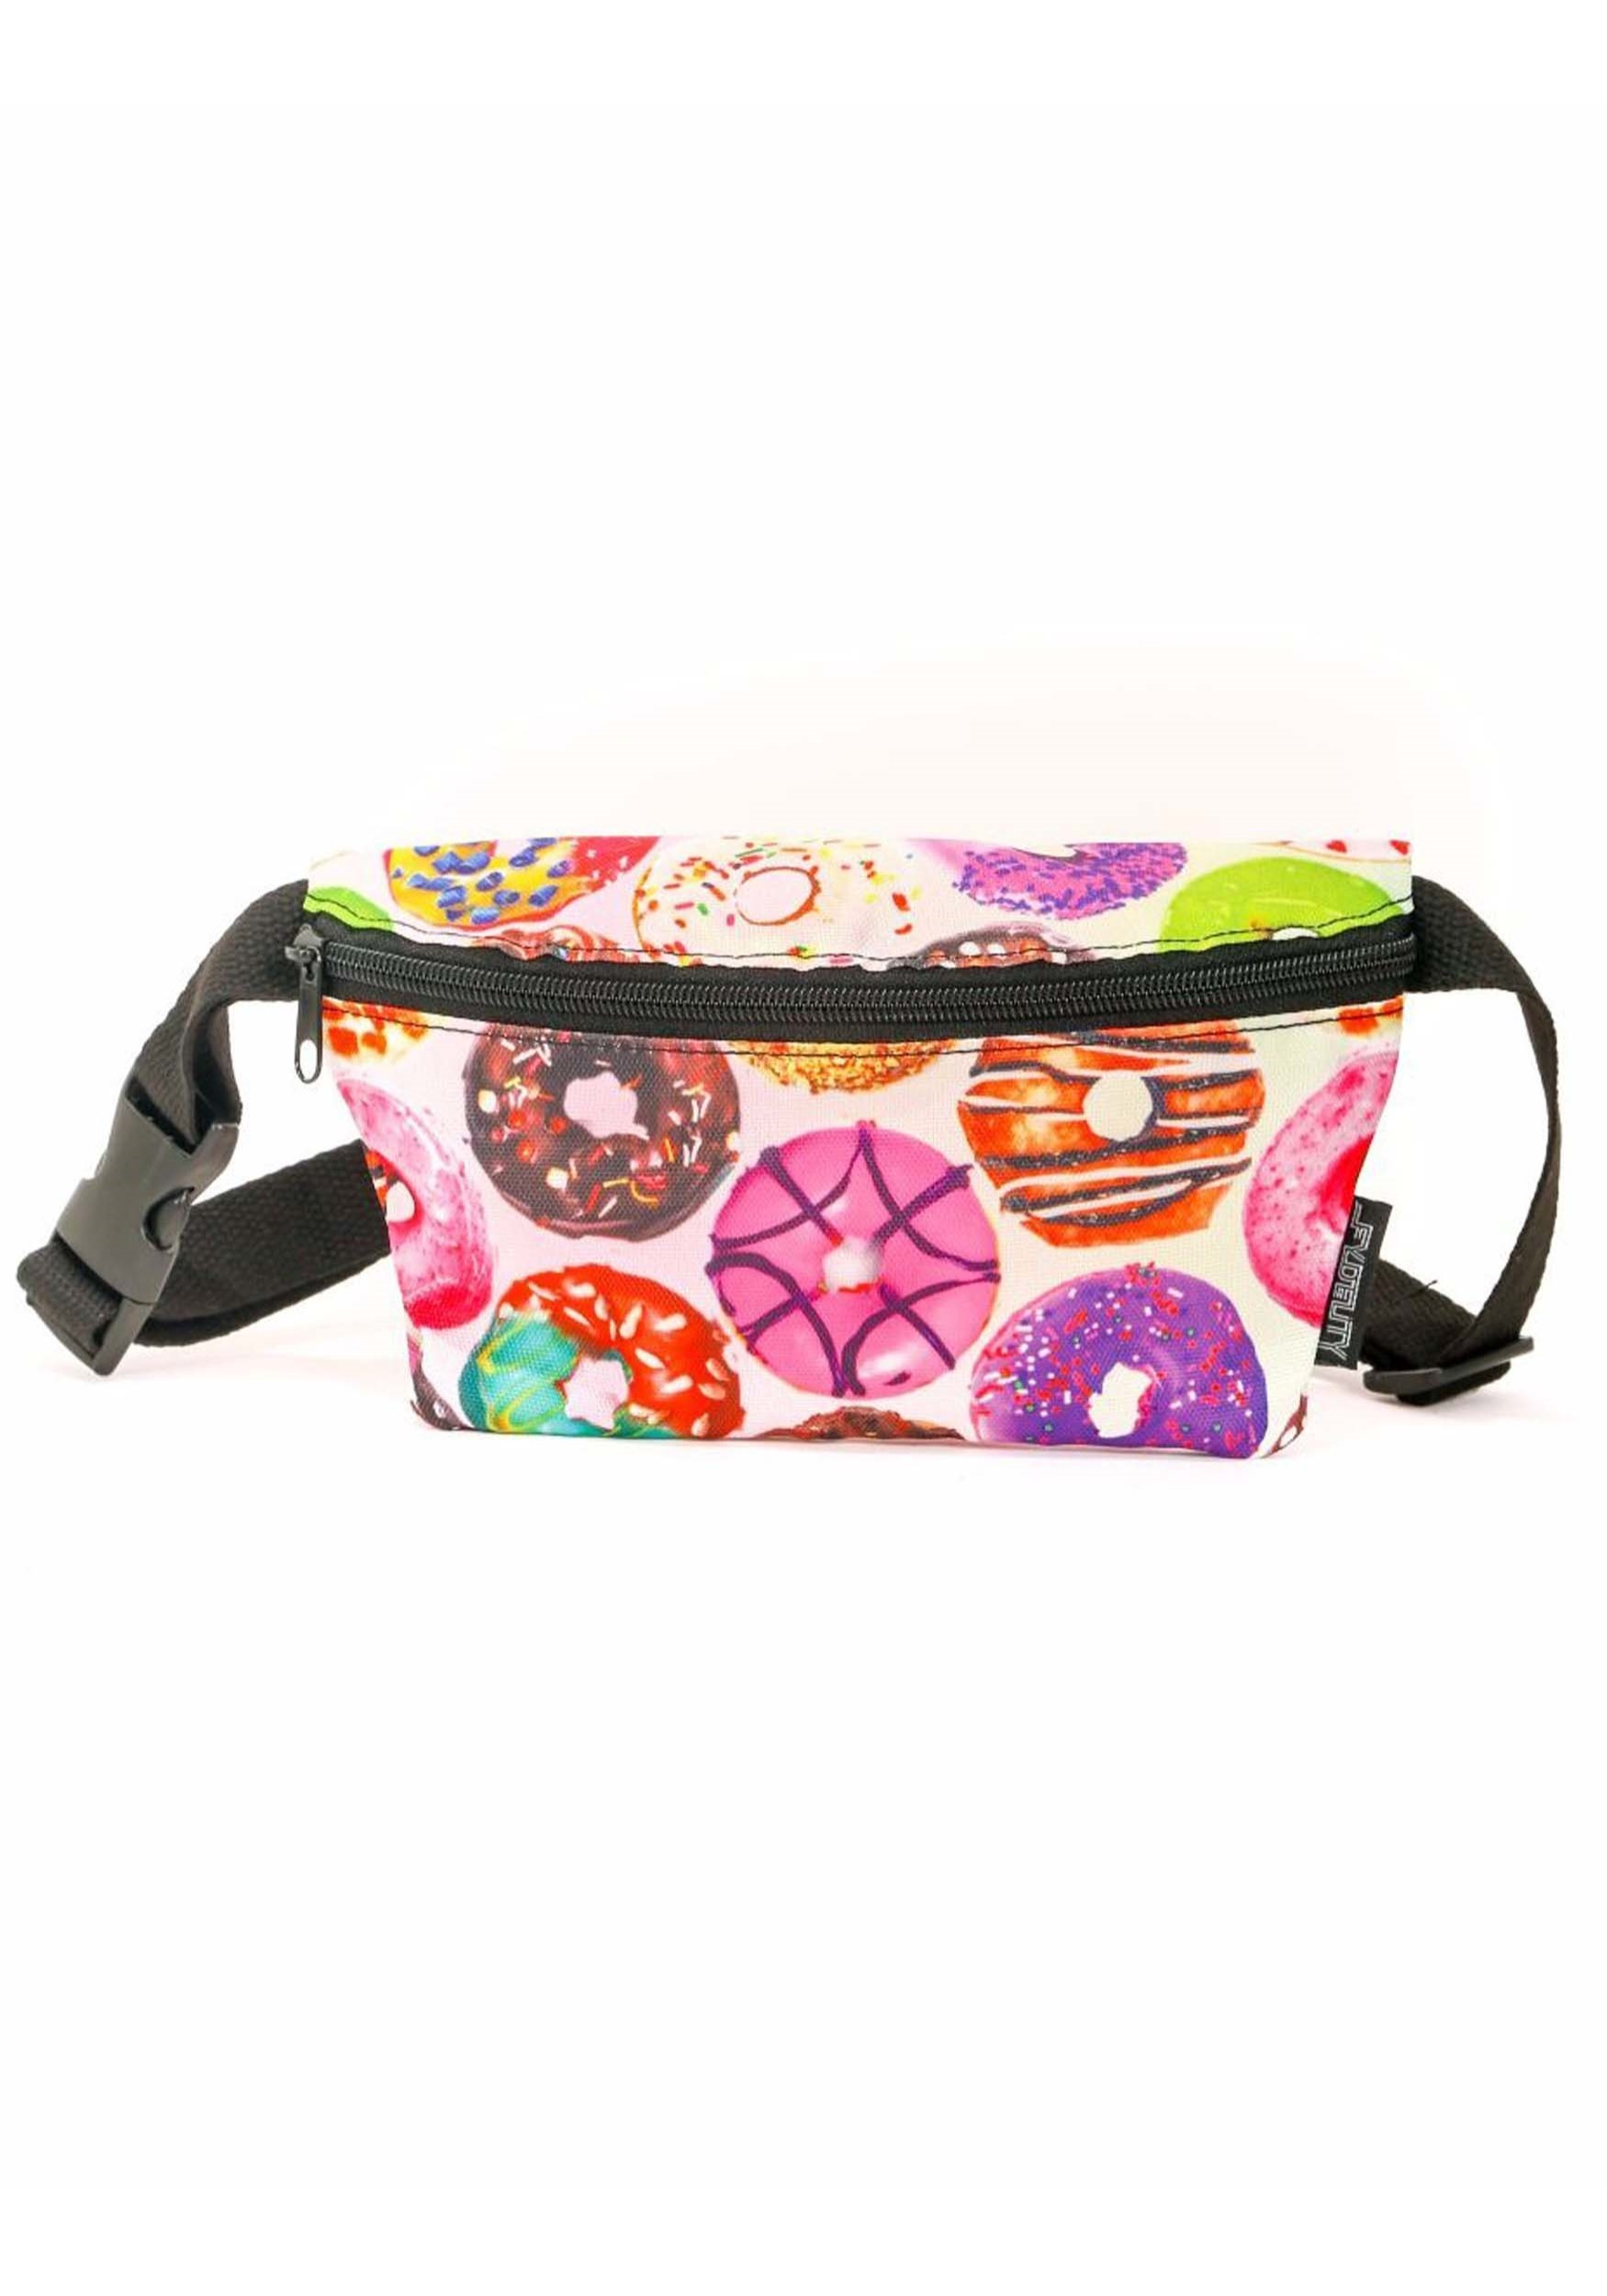 Donuts Print Bum Bag from Fydelity